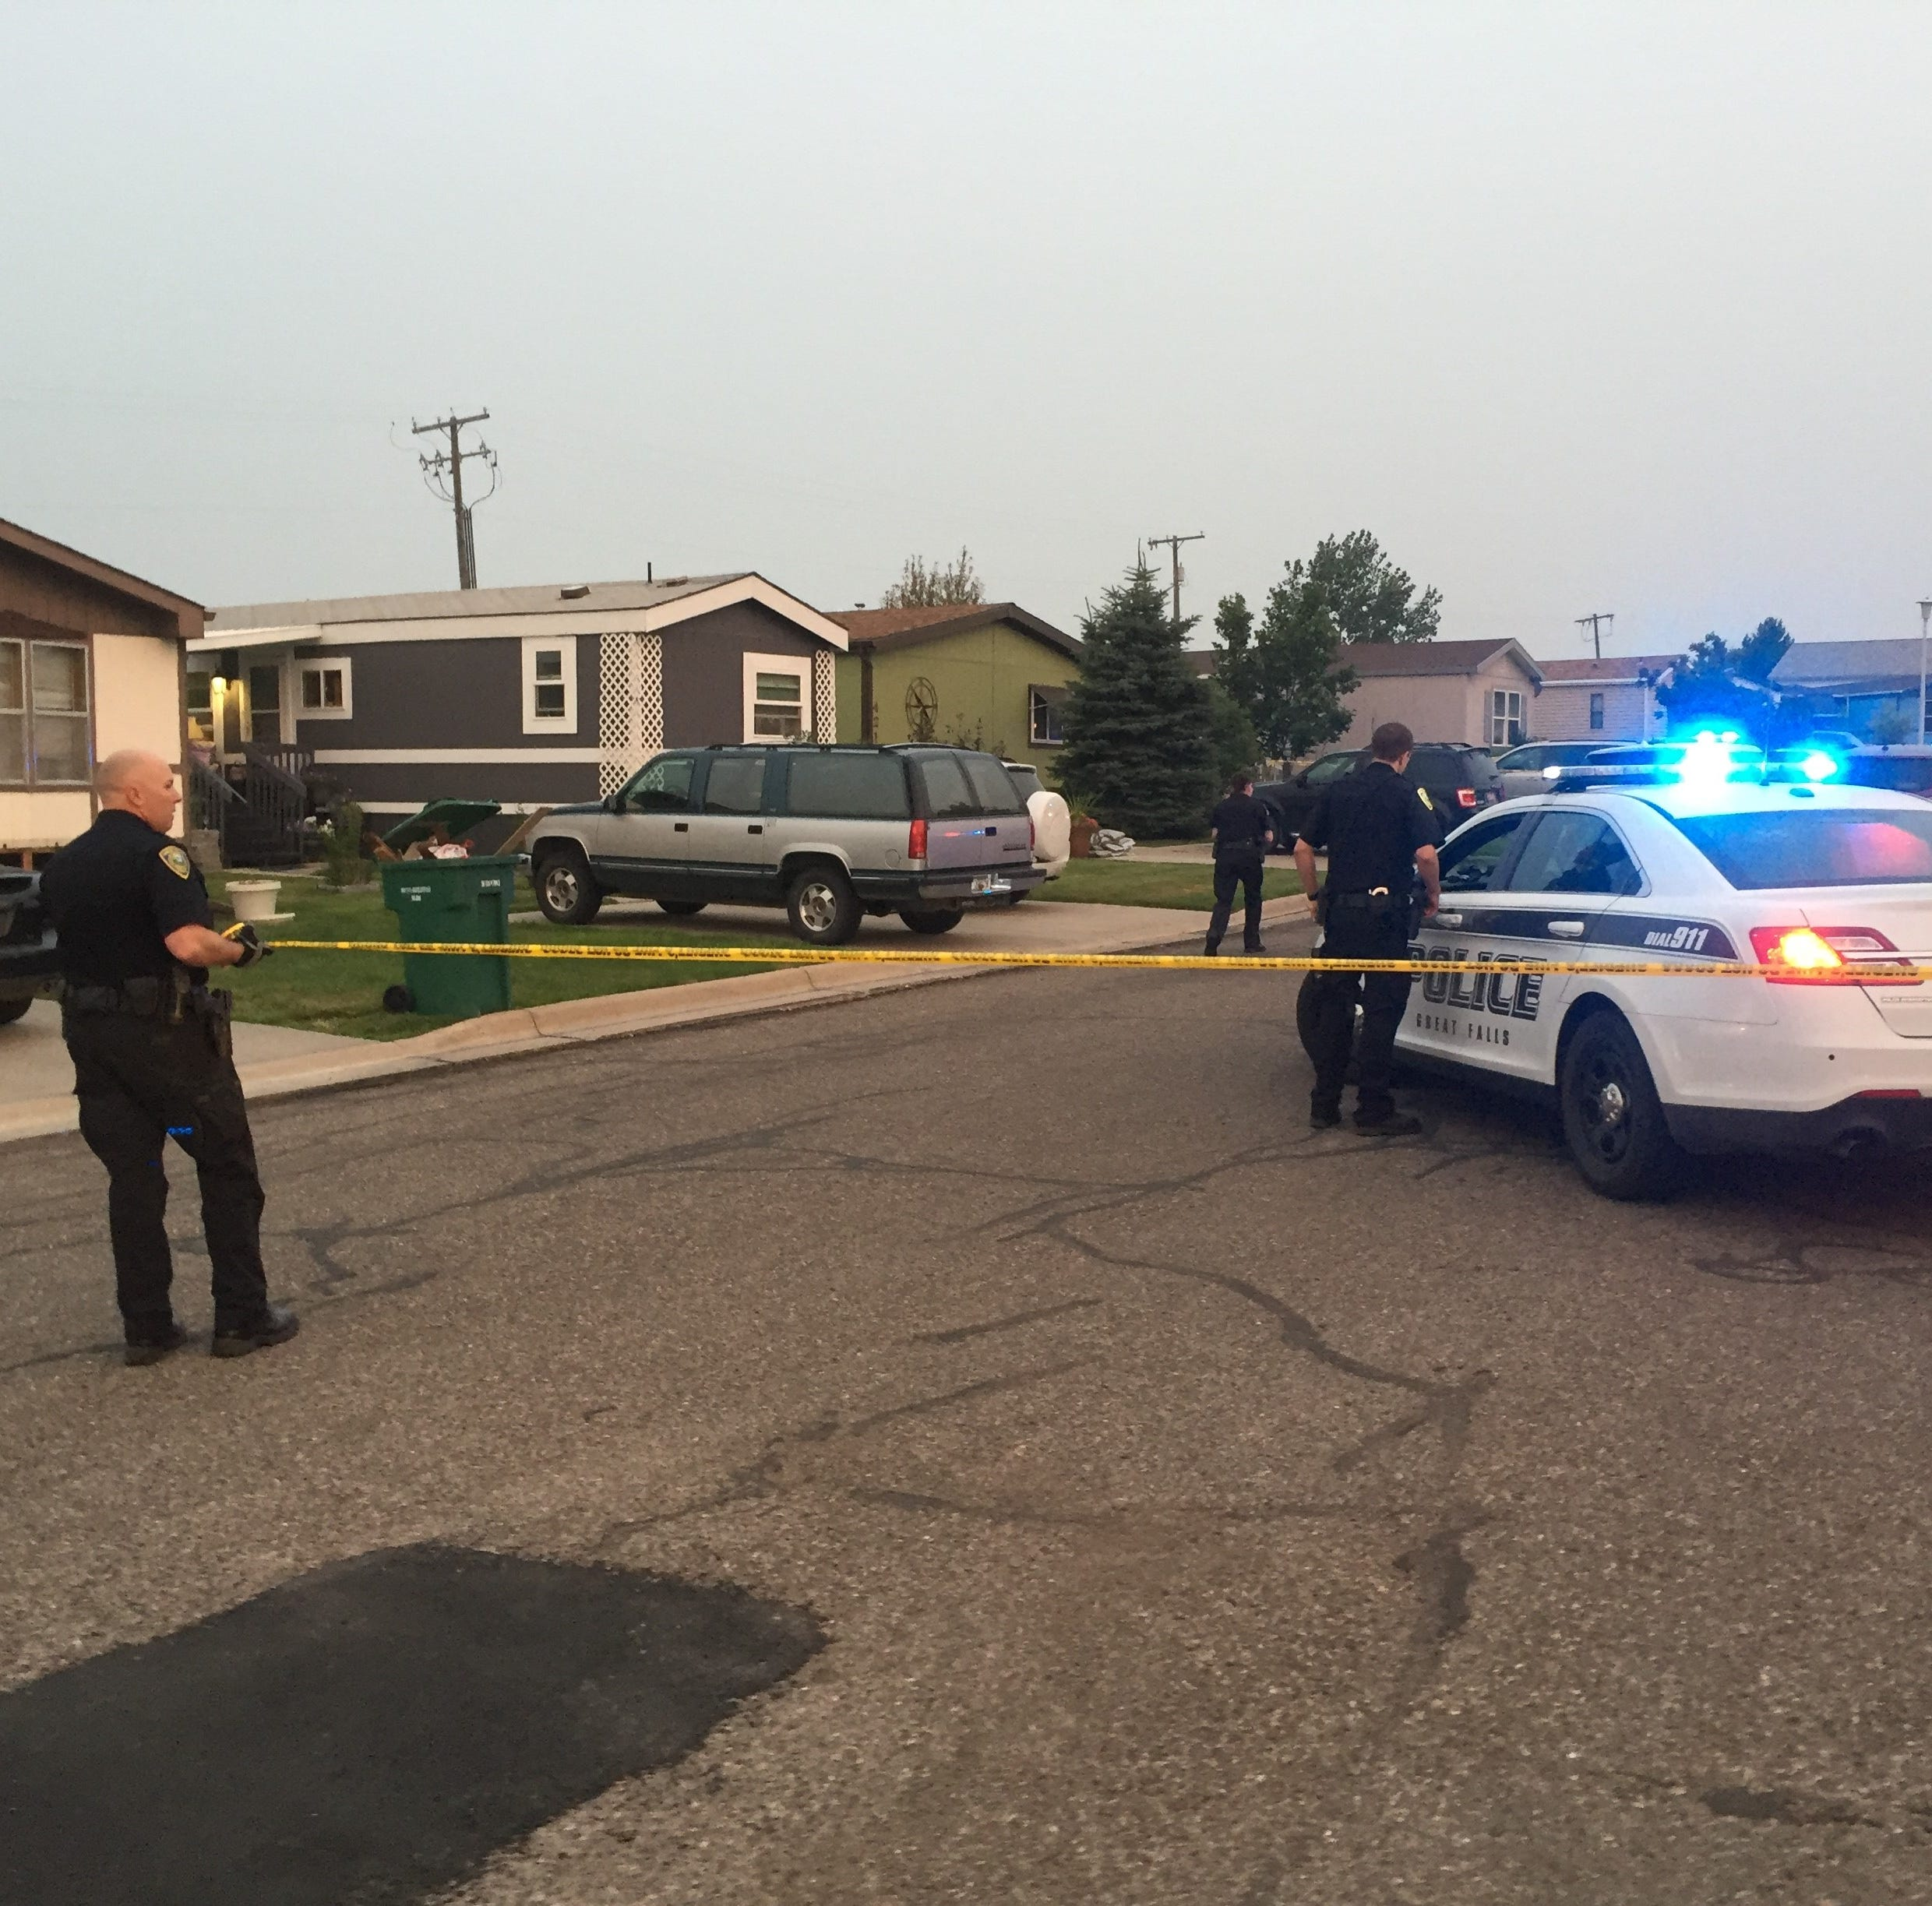 Details of gunfire death after Great Falls police-involved shooting